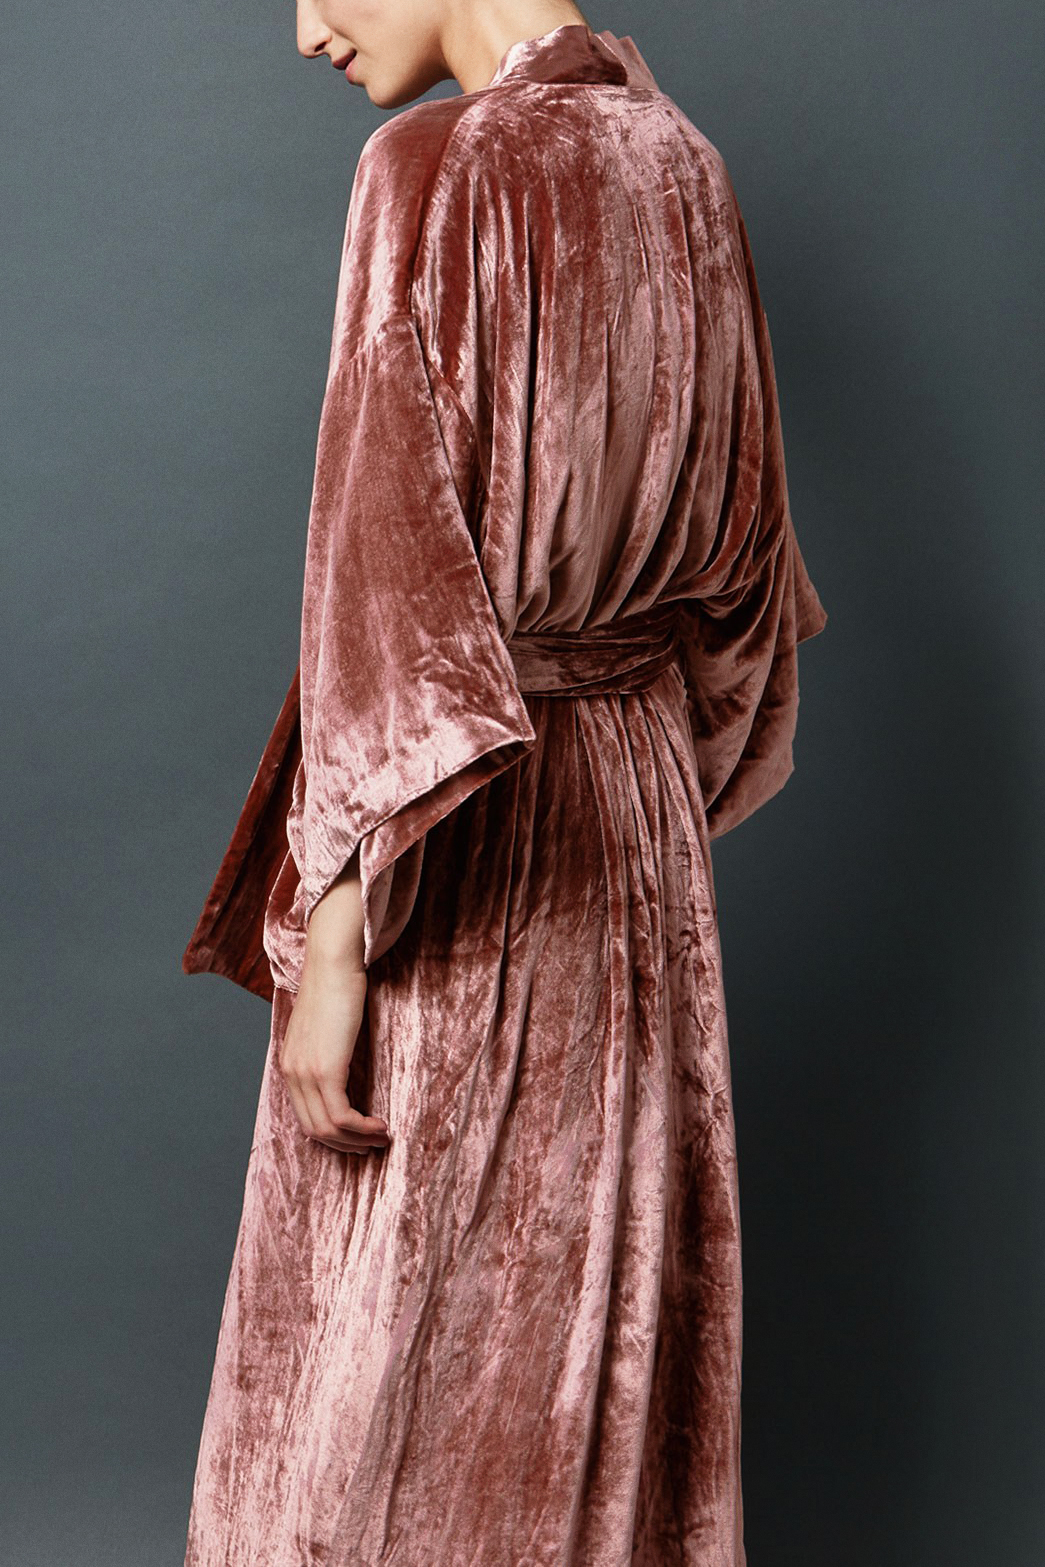 I love this colour velvet robe! I couldn't find the photo owner, or where to buy one from. So I am pulling a blank here. ASOS and Peter Alexander both have some nice robes/dressing gowns if you are after one for someone special. I personally love the fluffy ones too.